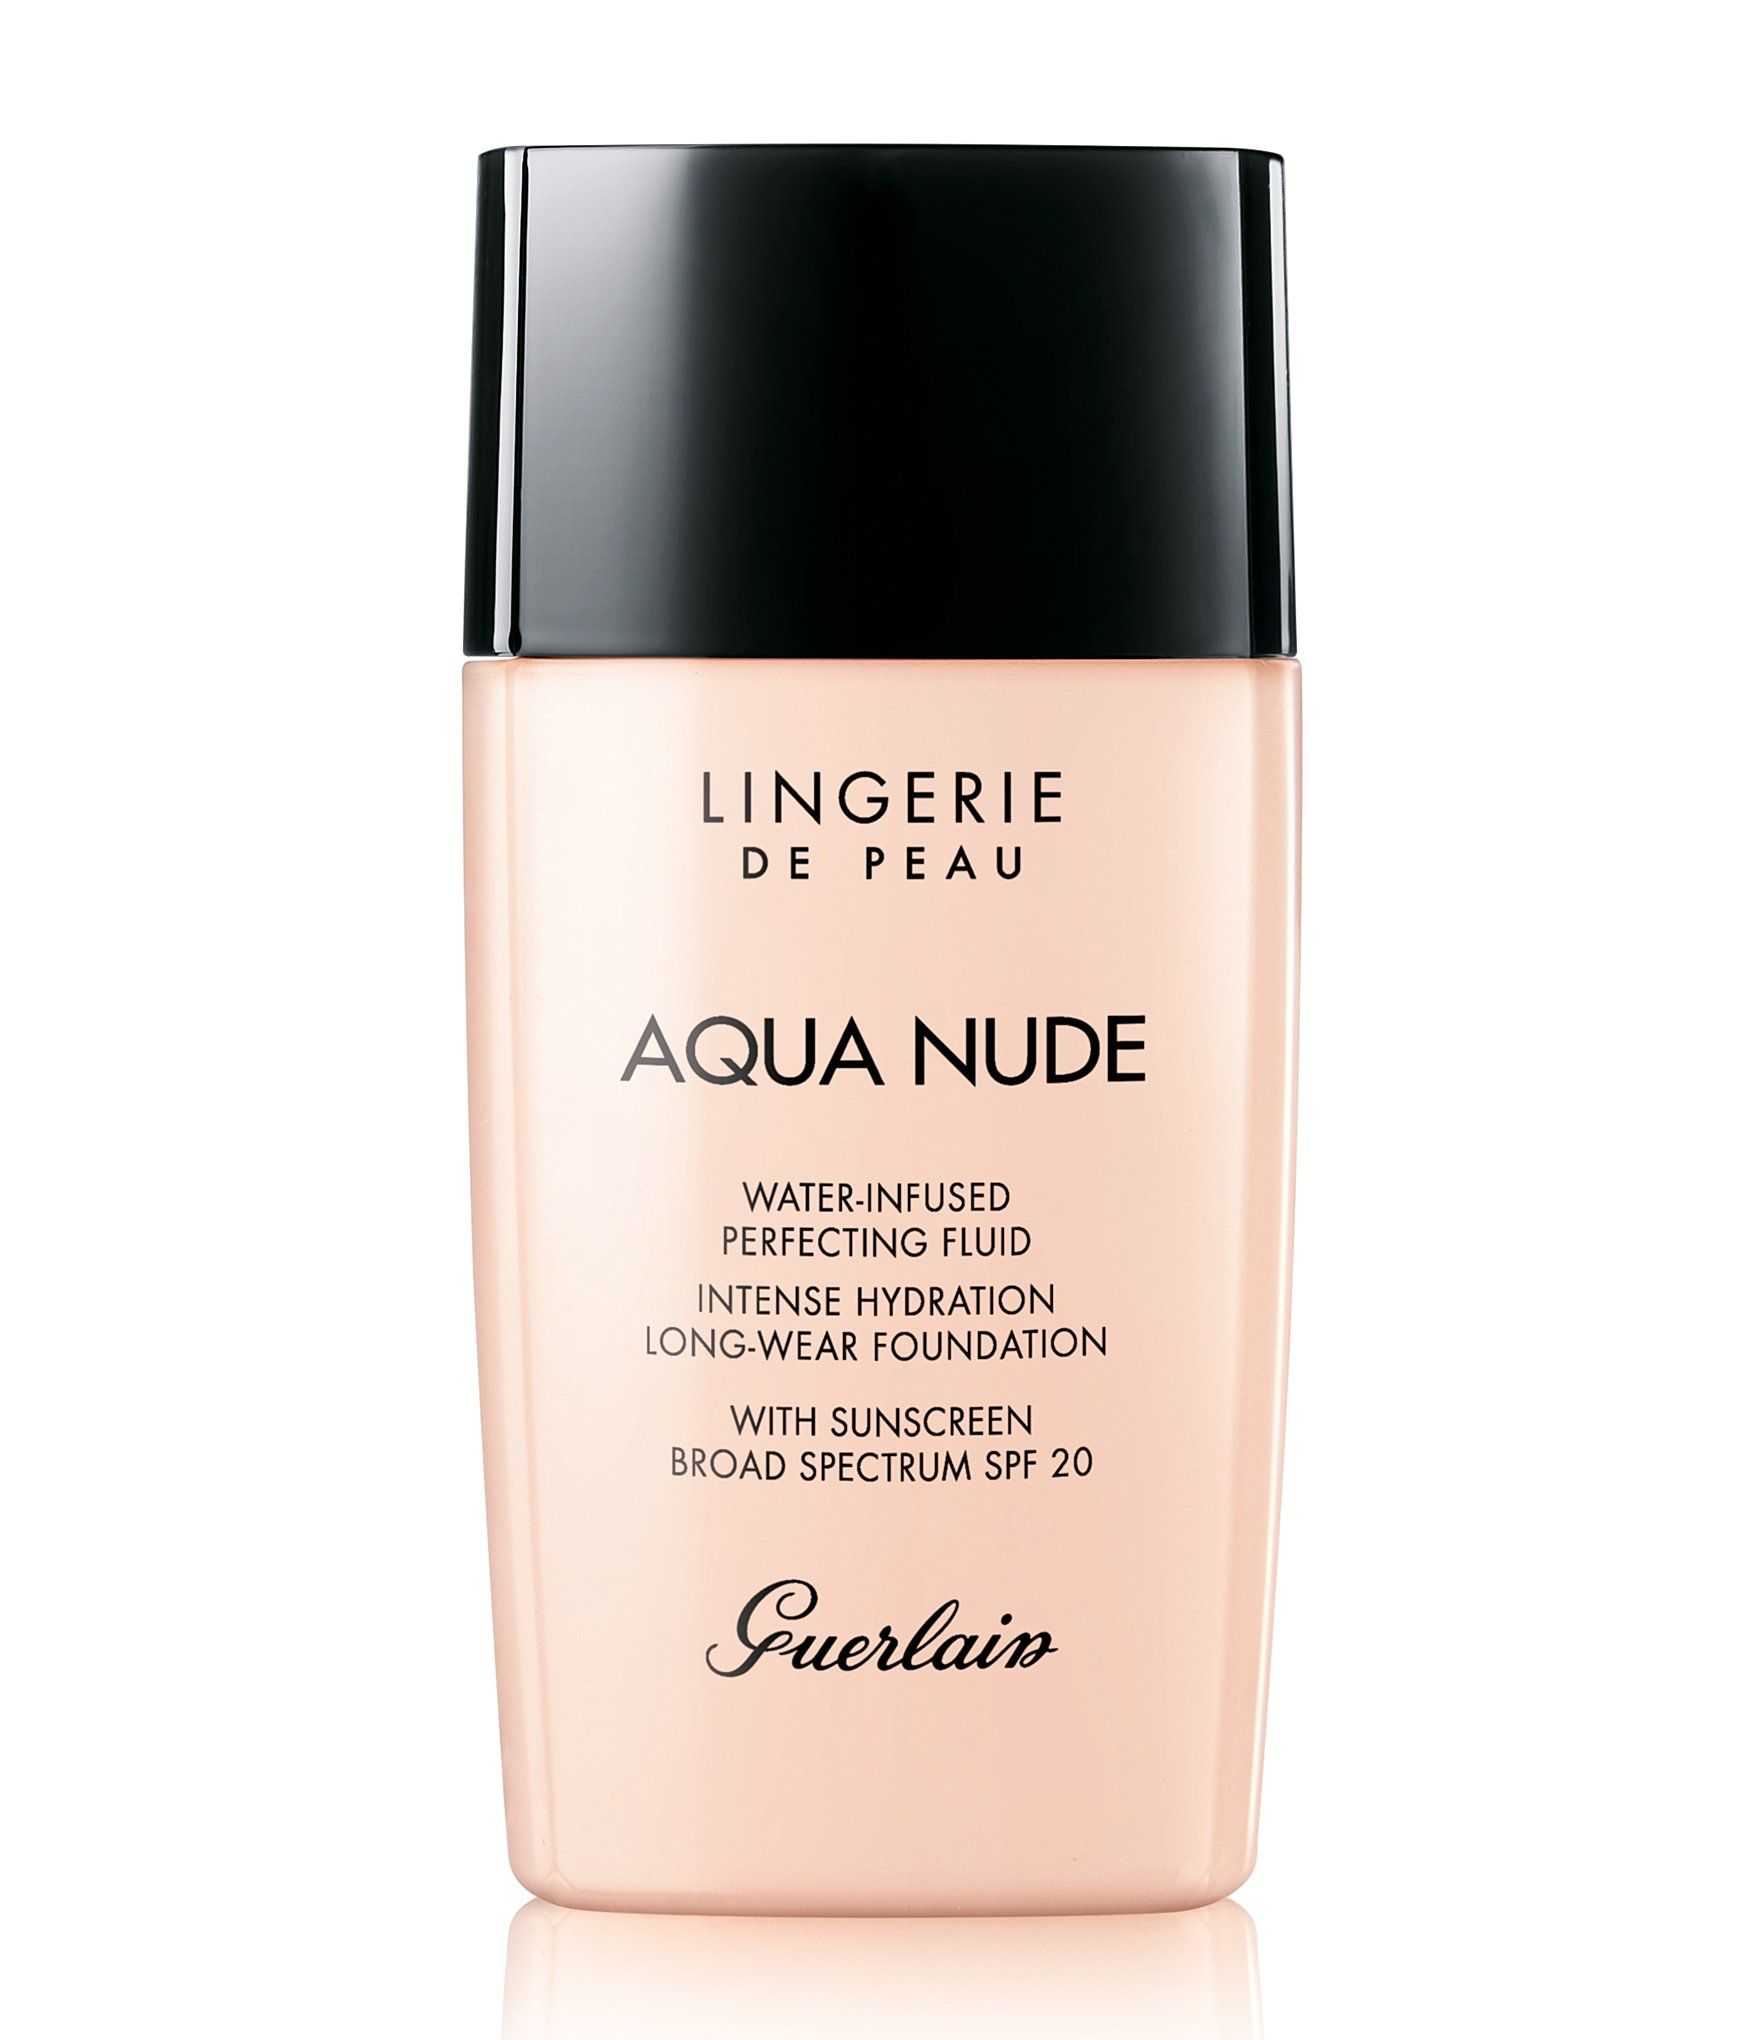 Guerlain has revolutionized second-skin-effect makeup with Lingerie de Peau Aqua Nude, an intensely hydrating, long-lasting and light-textured foundation for a more beautiful complexion.Its incredible weightless film appears to smooth and perfect the skin's texture with a sheer finish.  Infused with skincare water, its formula intensely hydrates the skin for endless comfort and a visibly re-plumped appearance of the skin&#